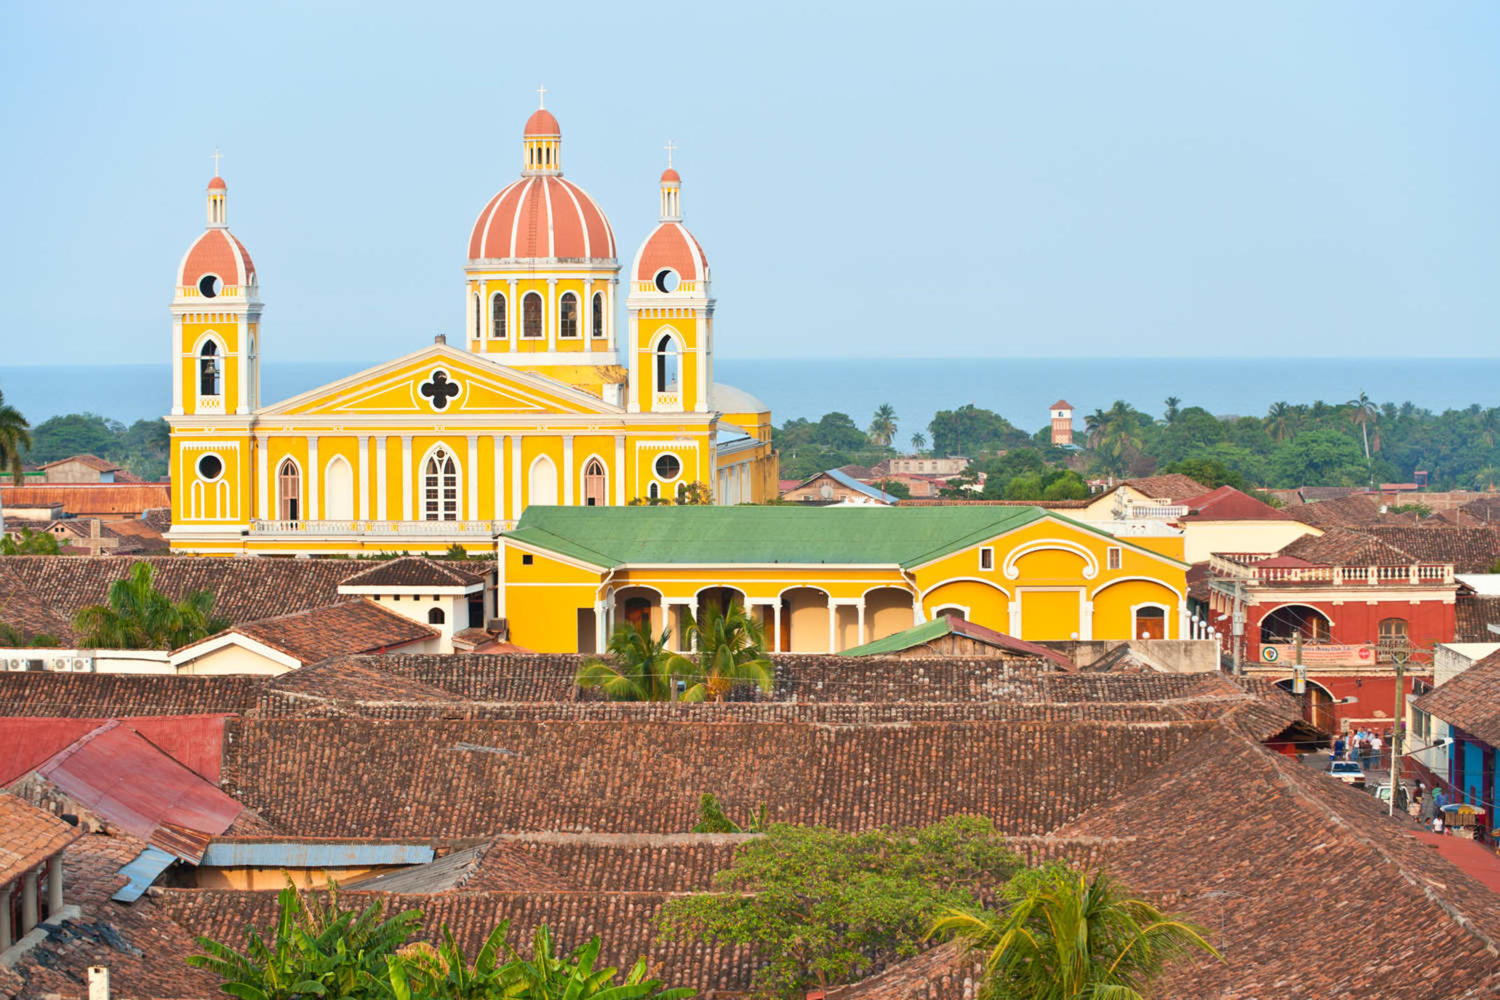 Granada cathedral and lake Nicaragua on the background